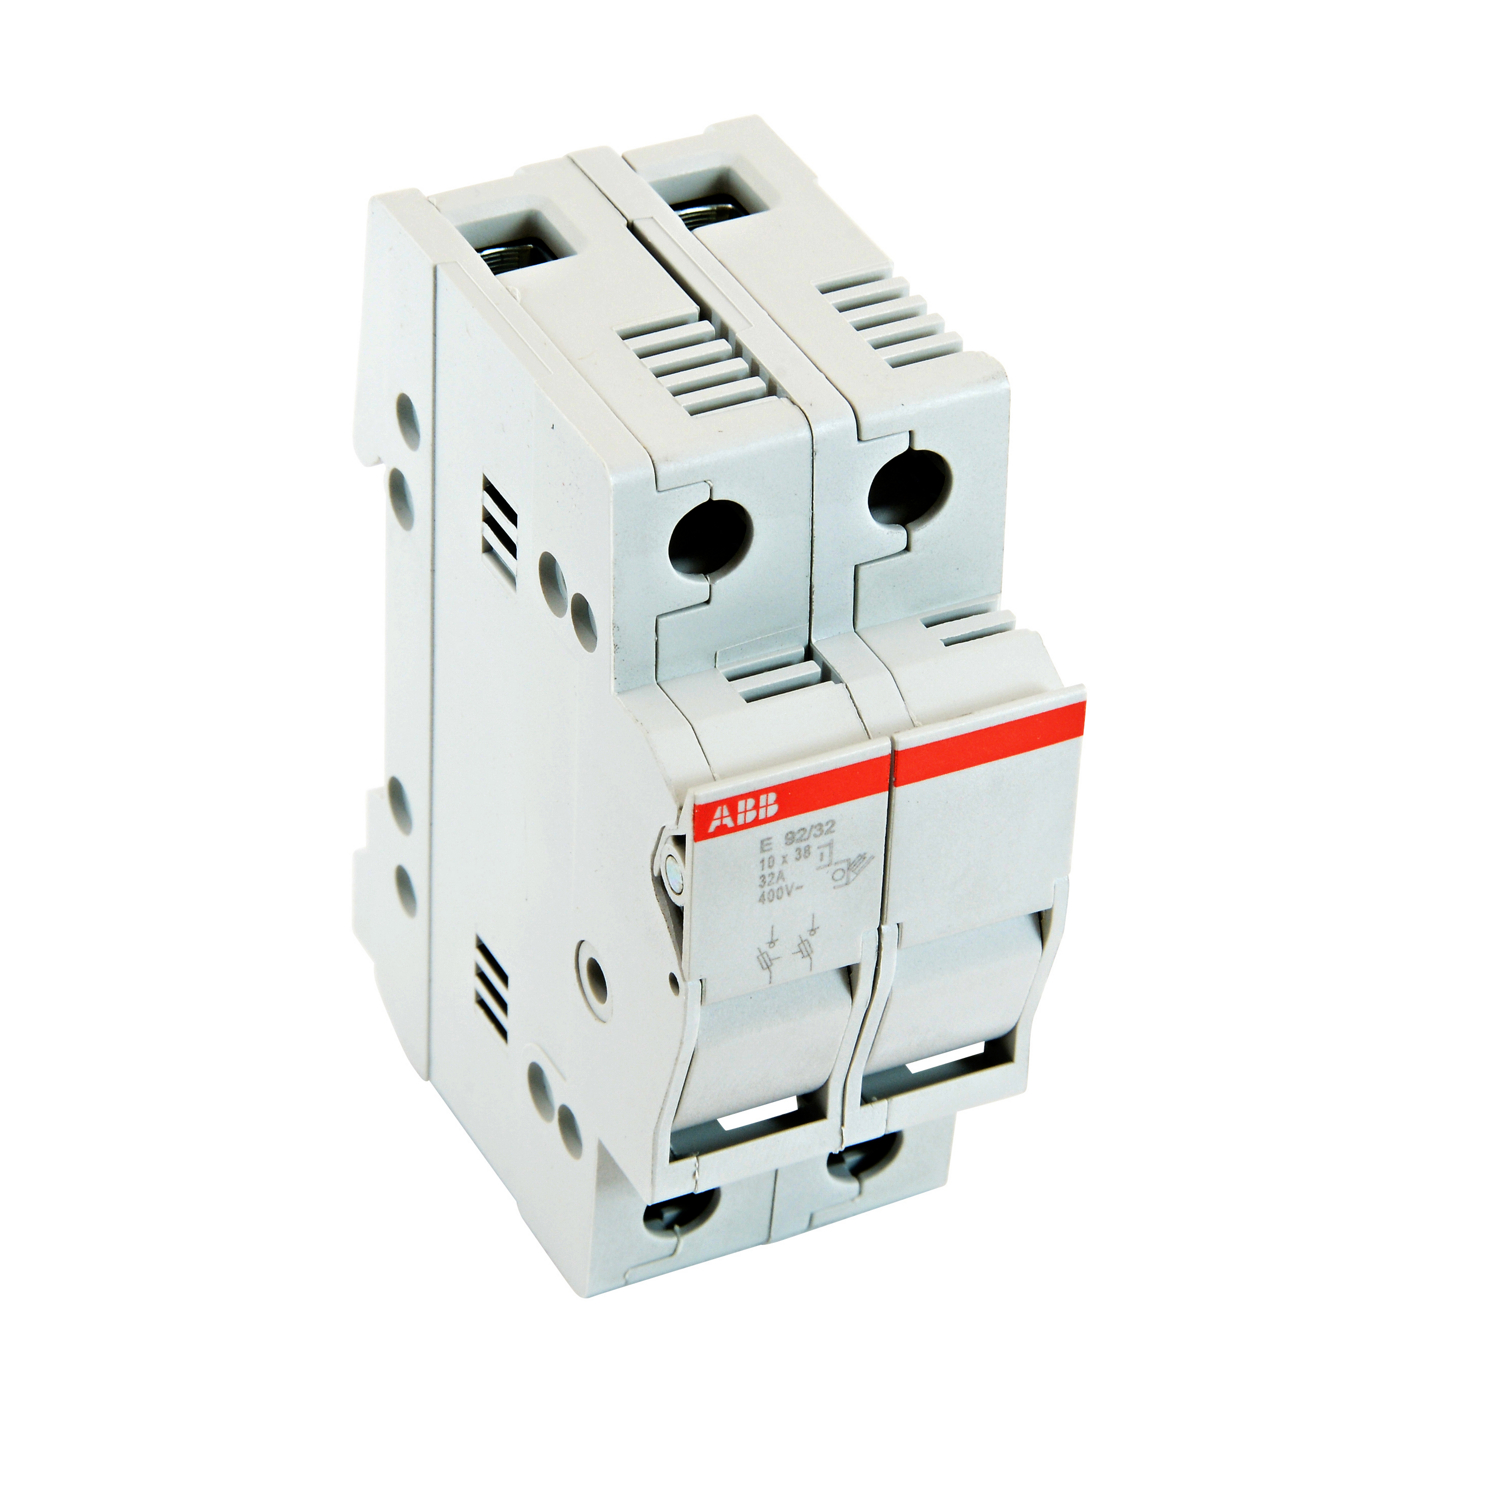 Abb Miniature Circuit Breakers Standard Electric Supply Load Centers Fuses 2 Pole 32 Amp Rated At 400 And 690v E90 Fuse Disconnect Ul